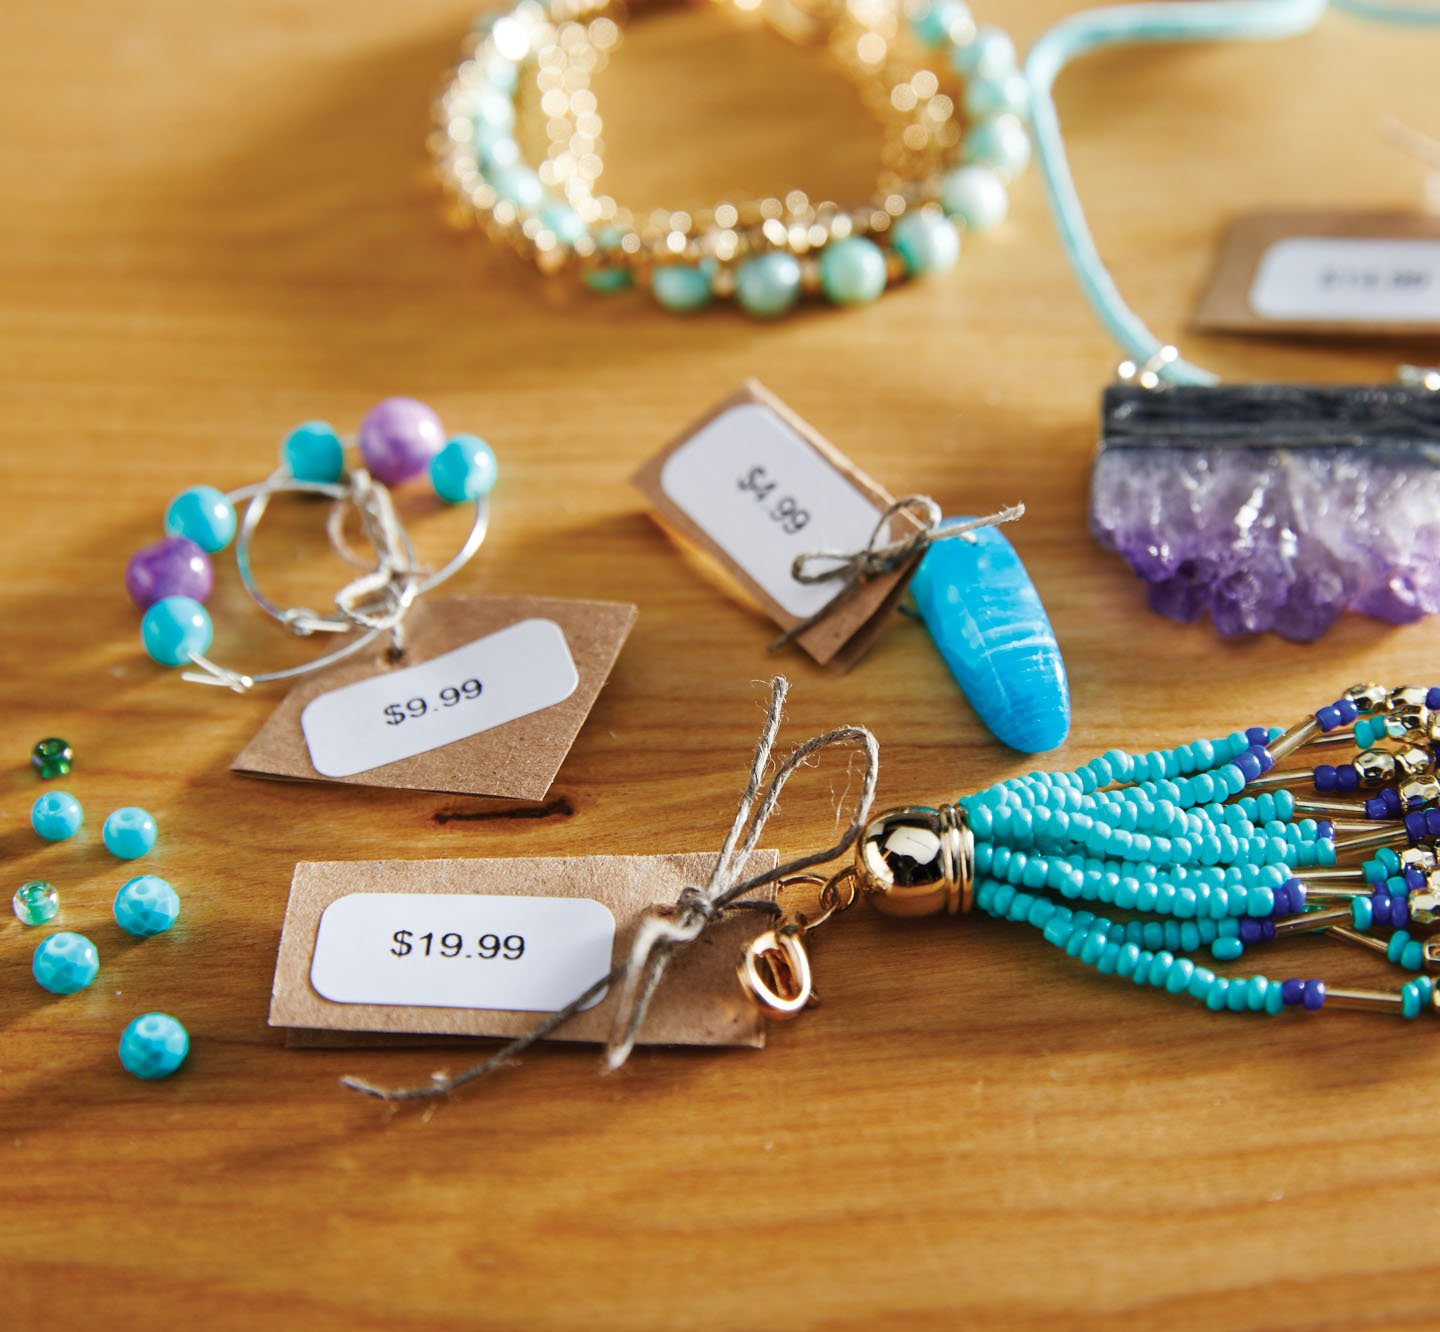 Price labels on jewelry.